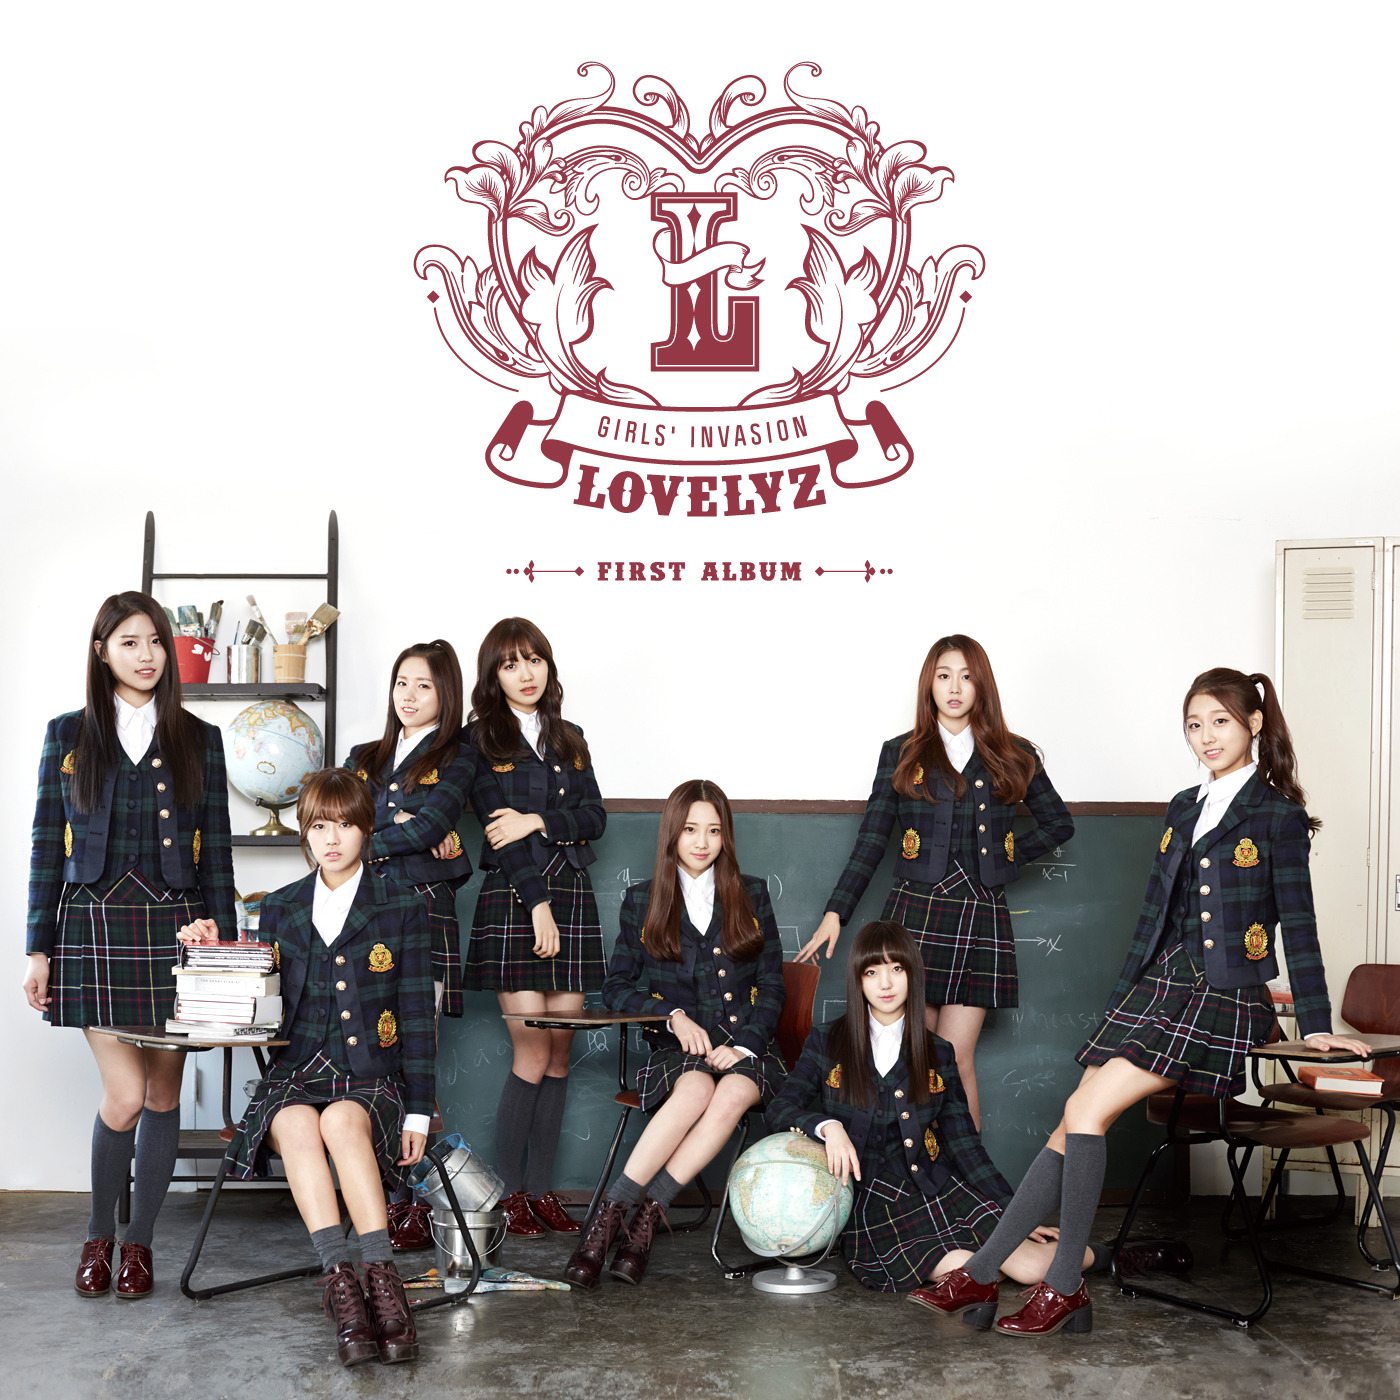 Girls' Invasion (First Album) - Lovelyz(러블리즈)